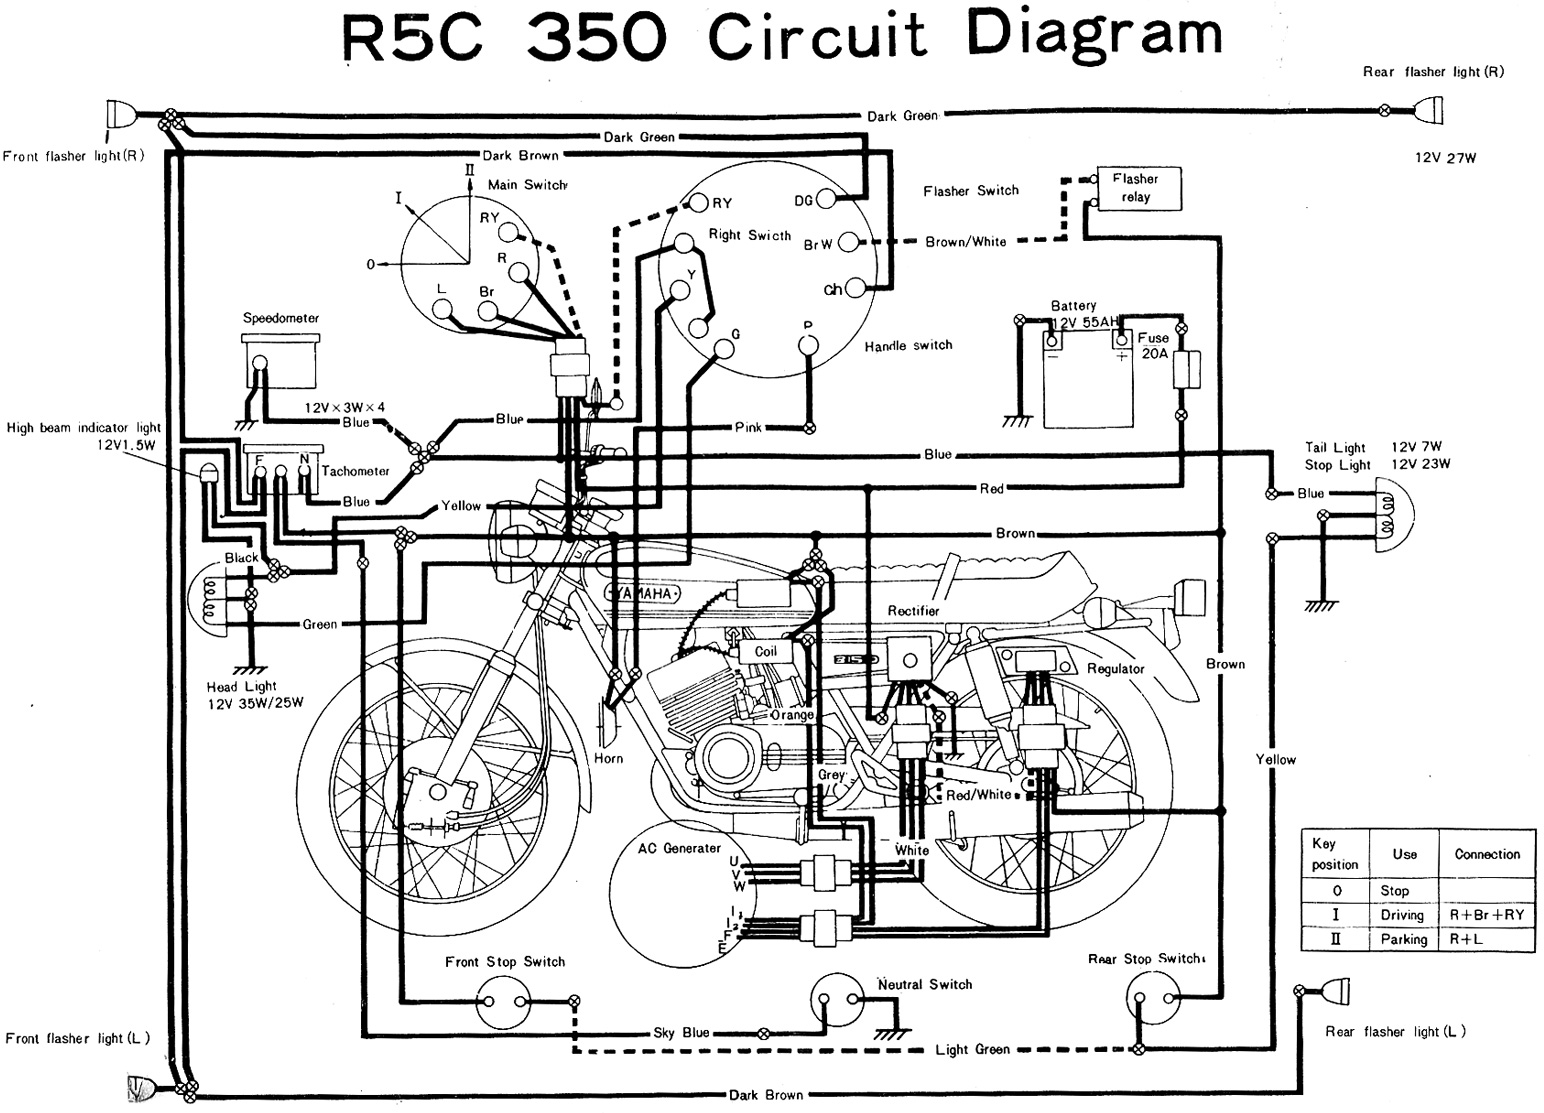 yamaha rd350 r5c wiring diagram evan fell motorcycle works rh cycles evanfell com yamaha wiring diagram symbols yamaha wiring diagram outboard